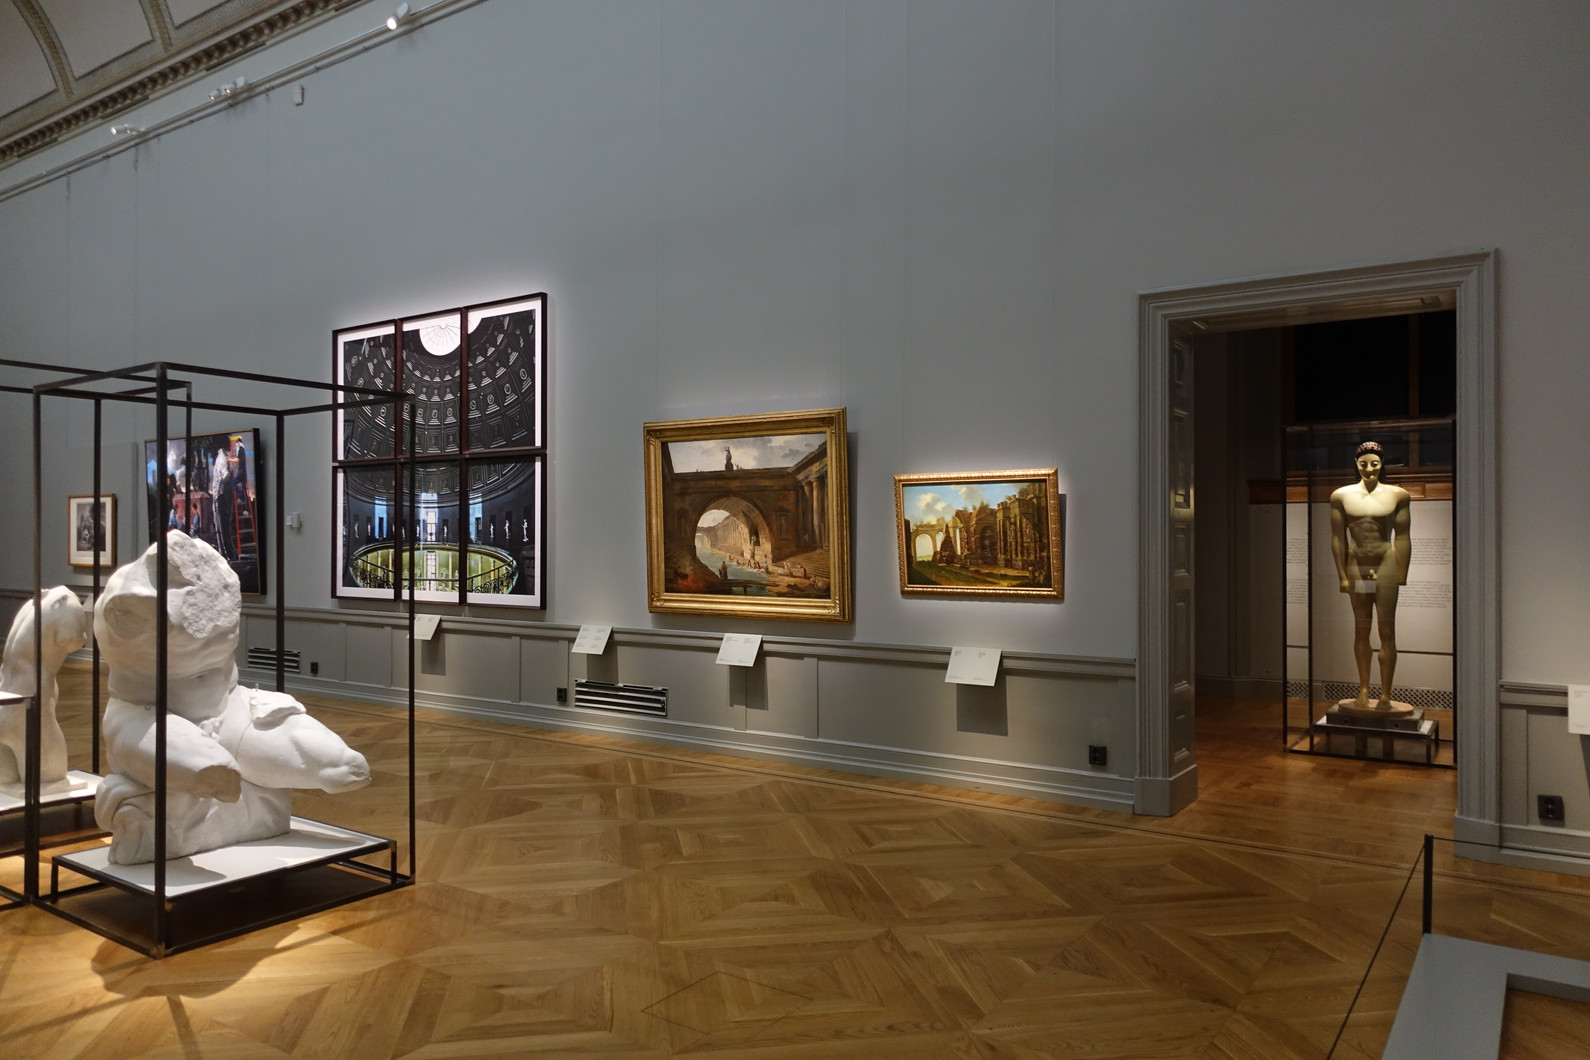 Installation view, Inspiration - Iconic works, Stockholm